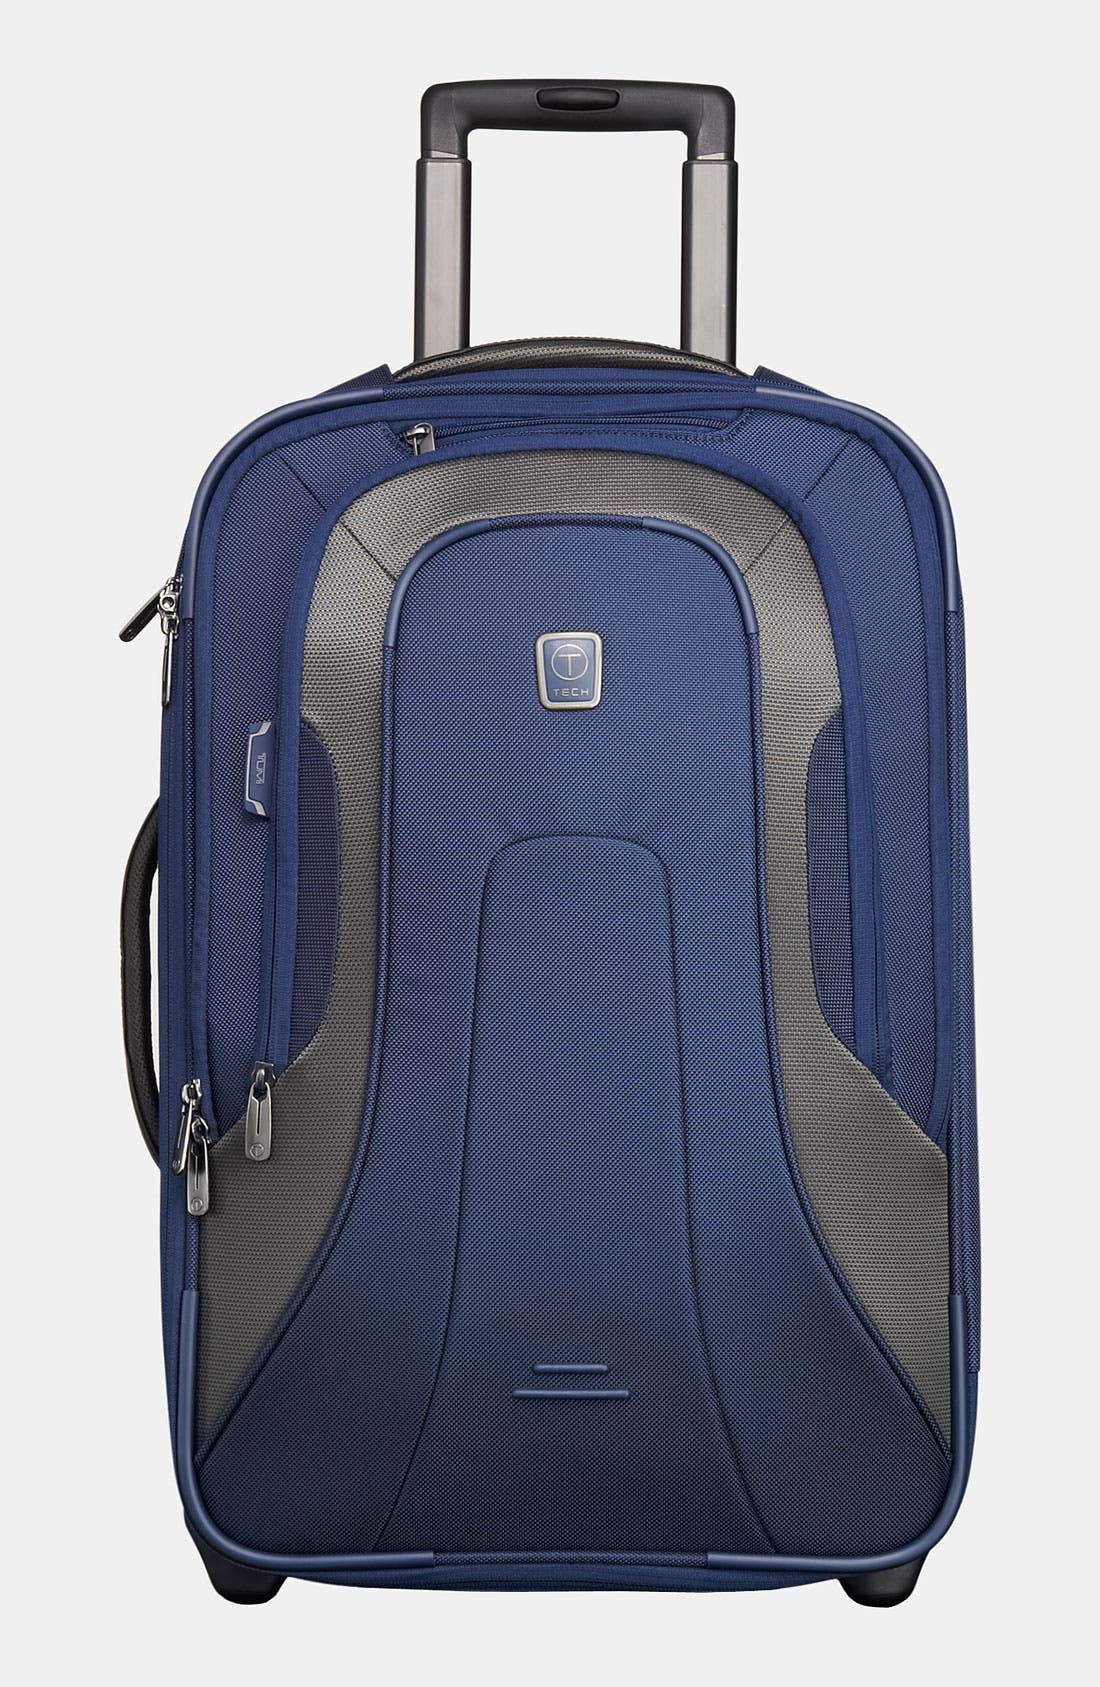 Main Image - Tumi 'T-Tech Presidio - Lincoln' Frequent Business Travel Bag